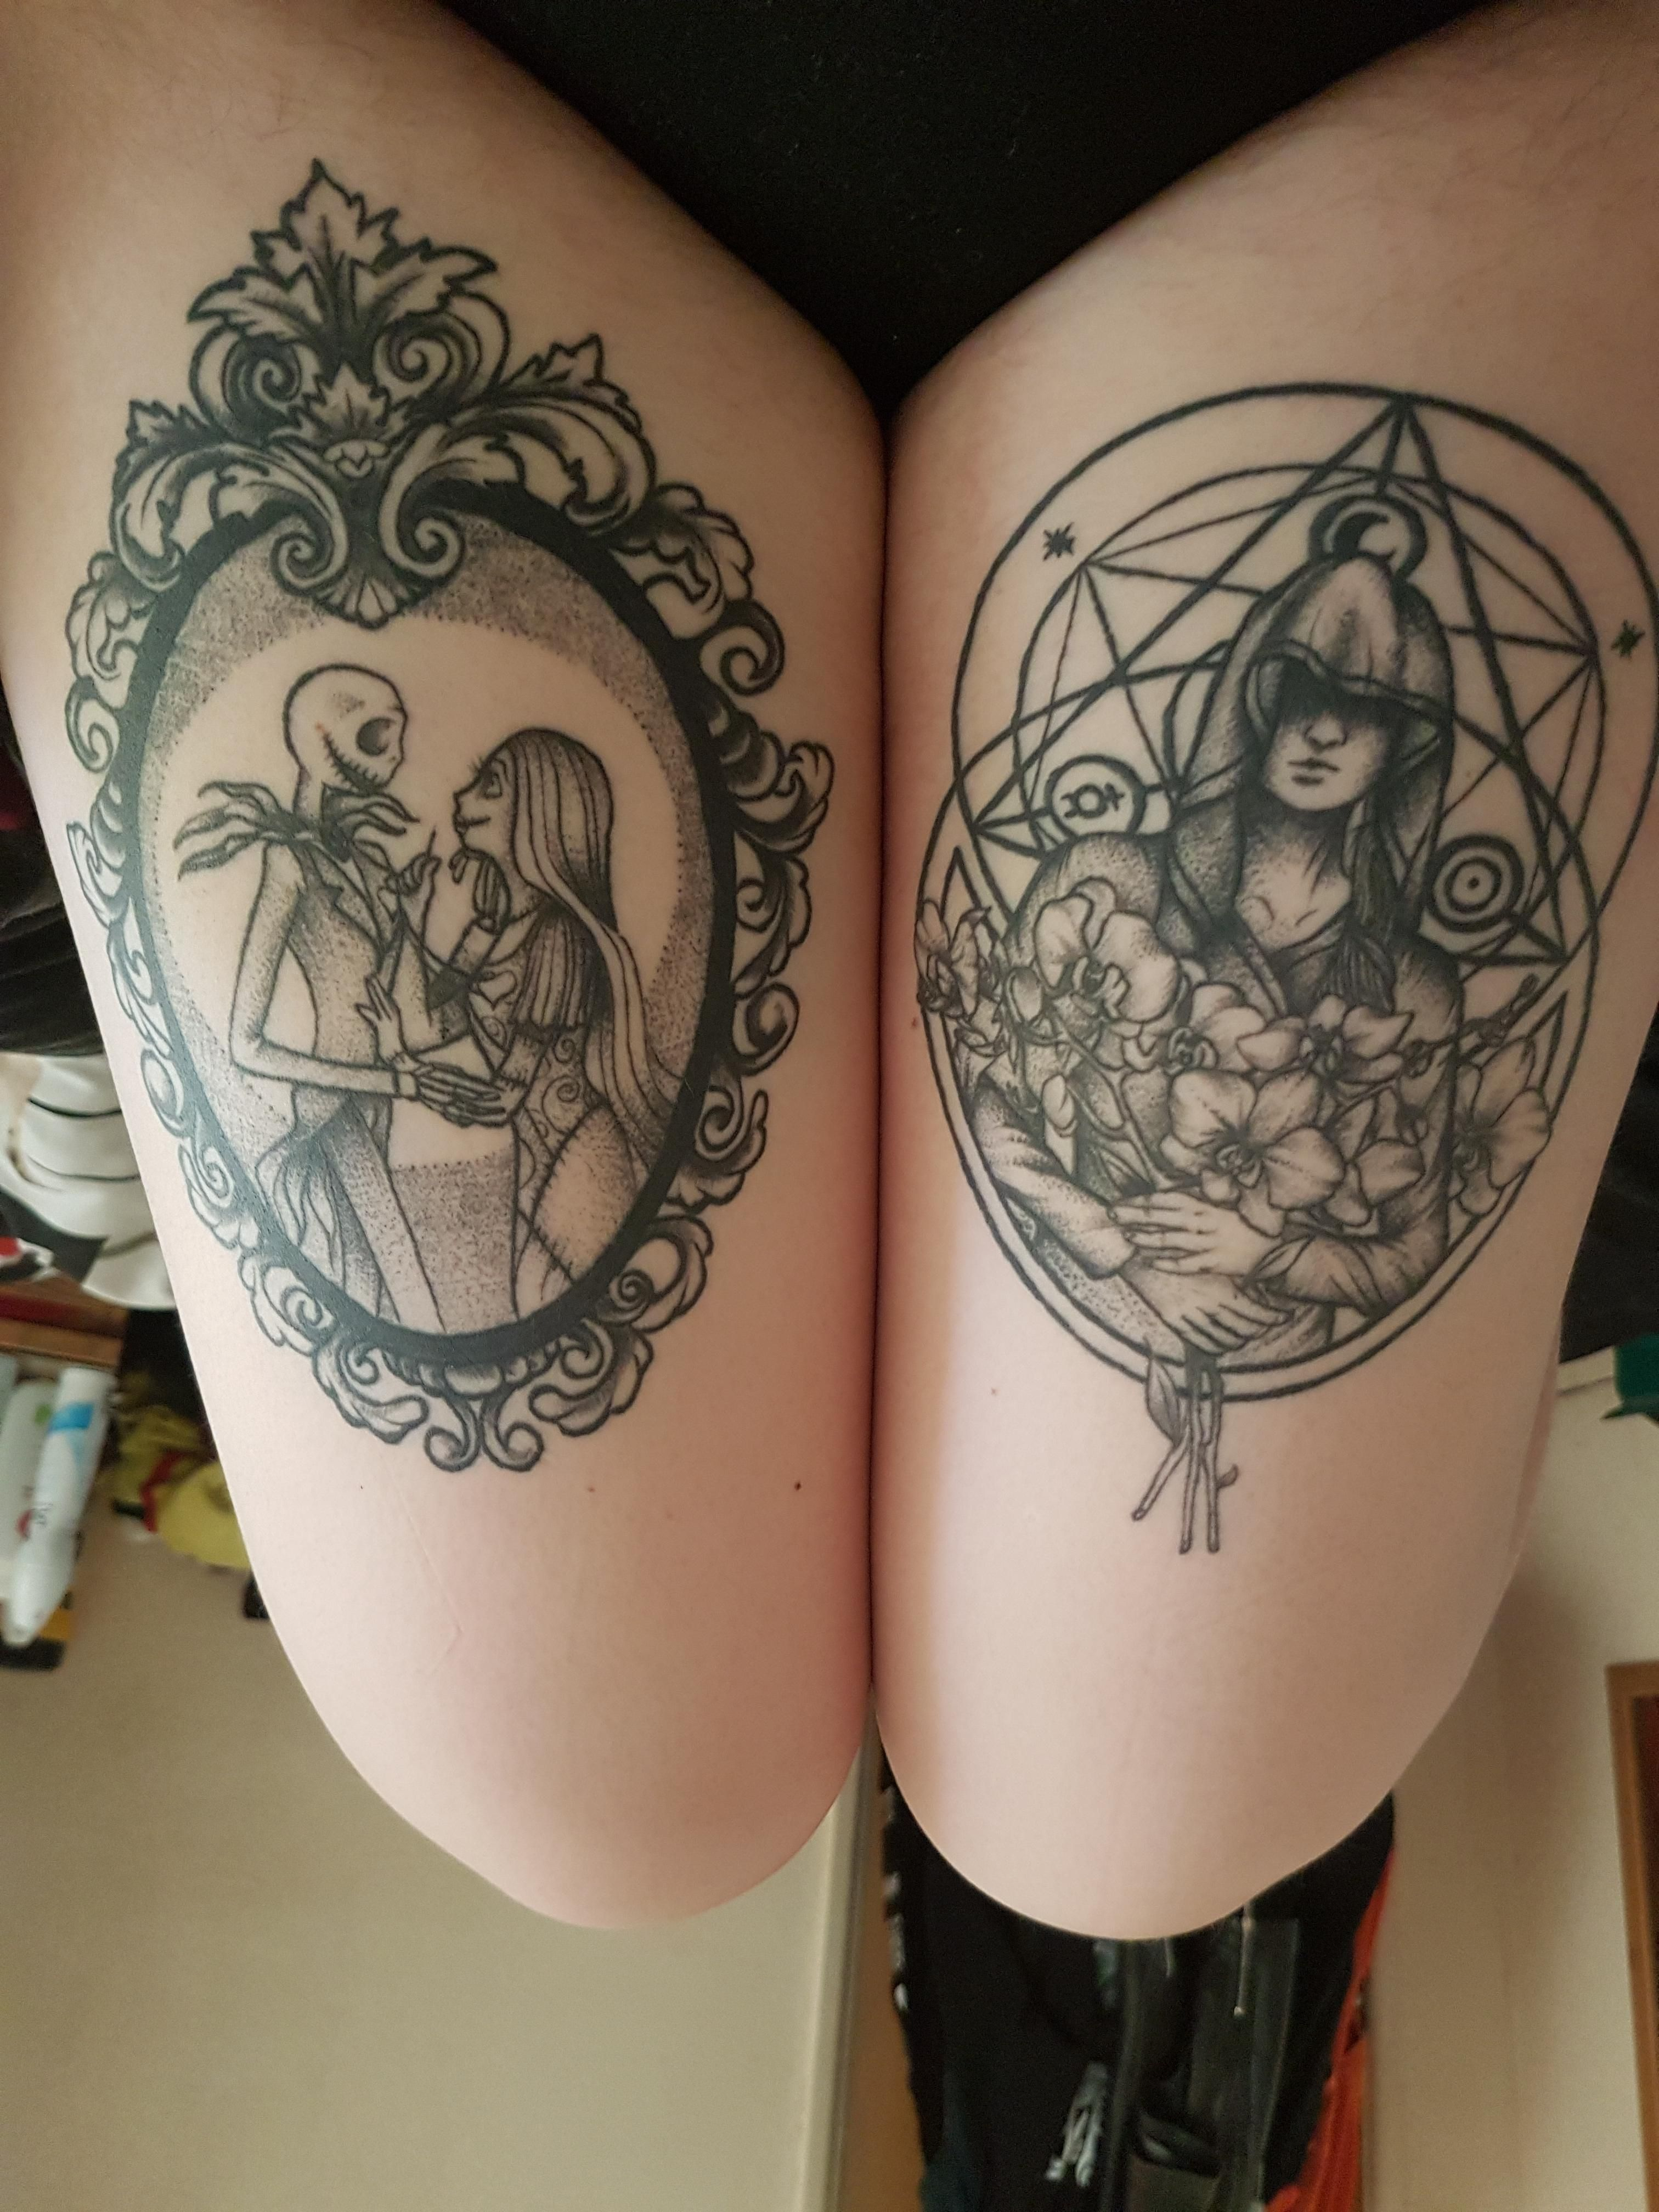 906ab7a84 My two thigh tattoos. Both done by Ash at The Crow Quill Tattoo Studio in  Southampton UK.